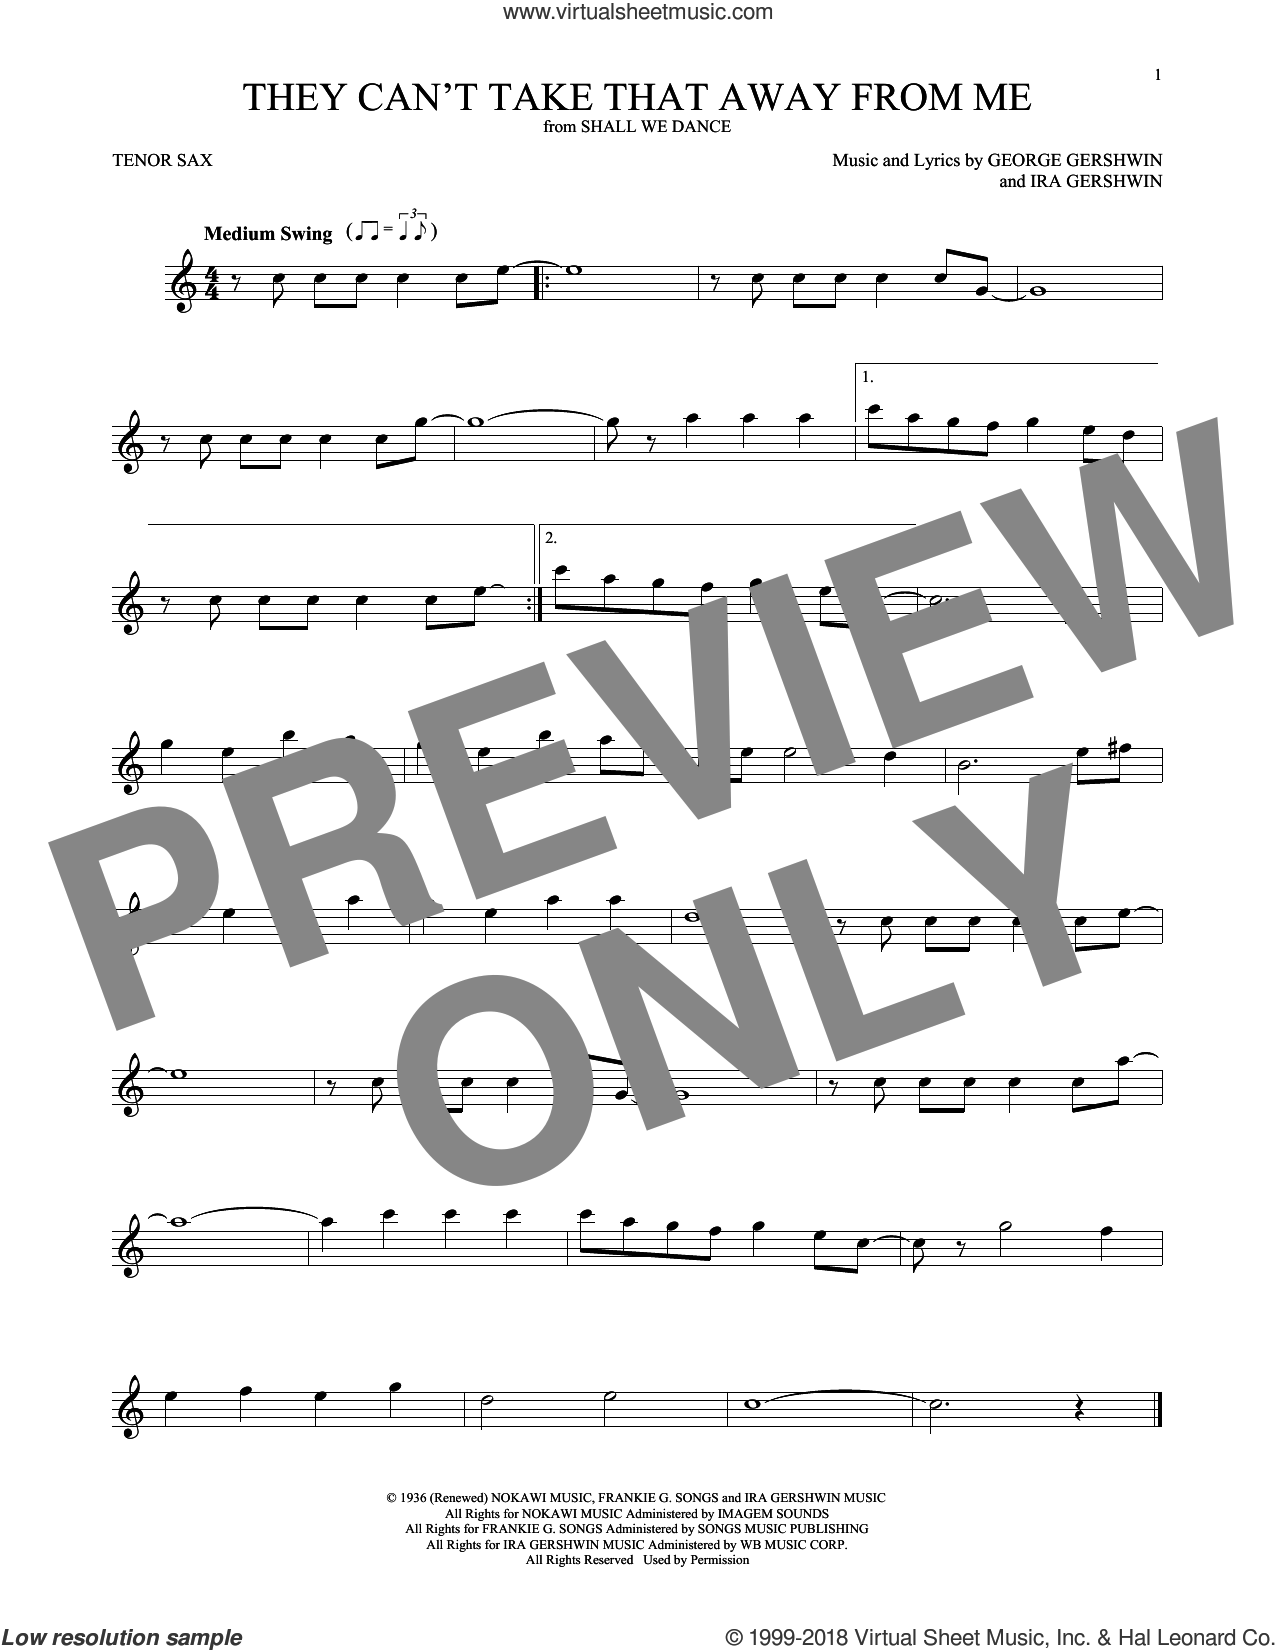 They Can't Take That Away From Me sheet music for tenor saxophone solo by Frank Sinatra, George Gershwin and Ira Gershwin, intermediate skill level